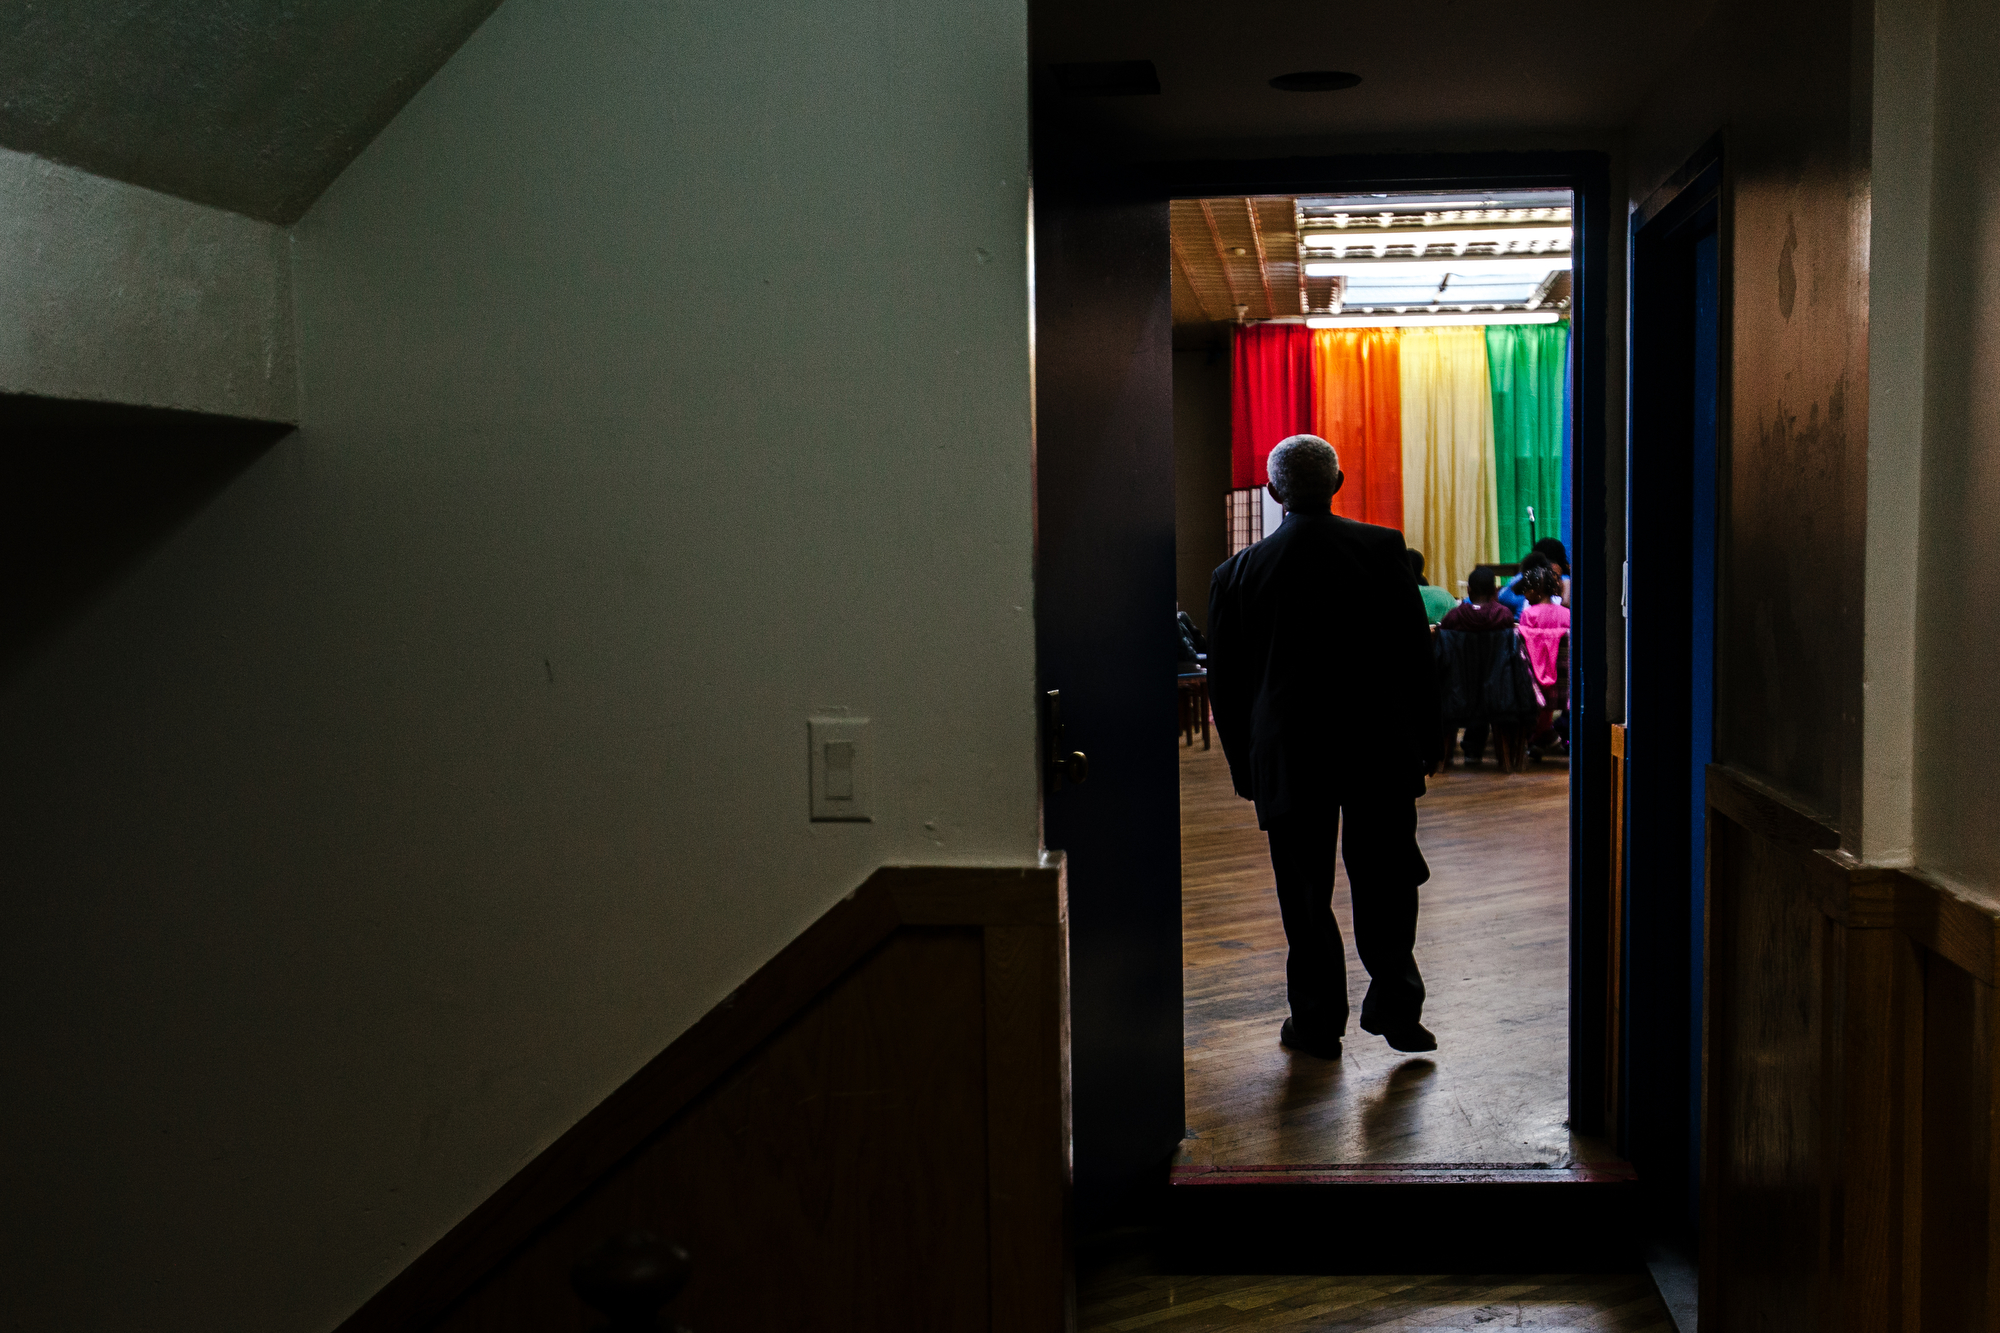 Ernestine, one of the church's longstanding members and its head usher, walks into the church space before service. The space is rented by the week and has no permanent space, though it has been in this location for years.